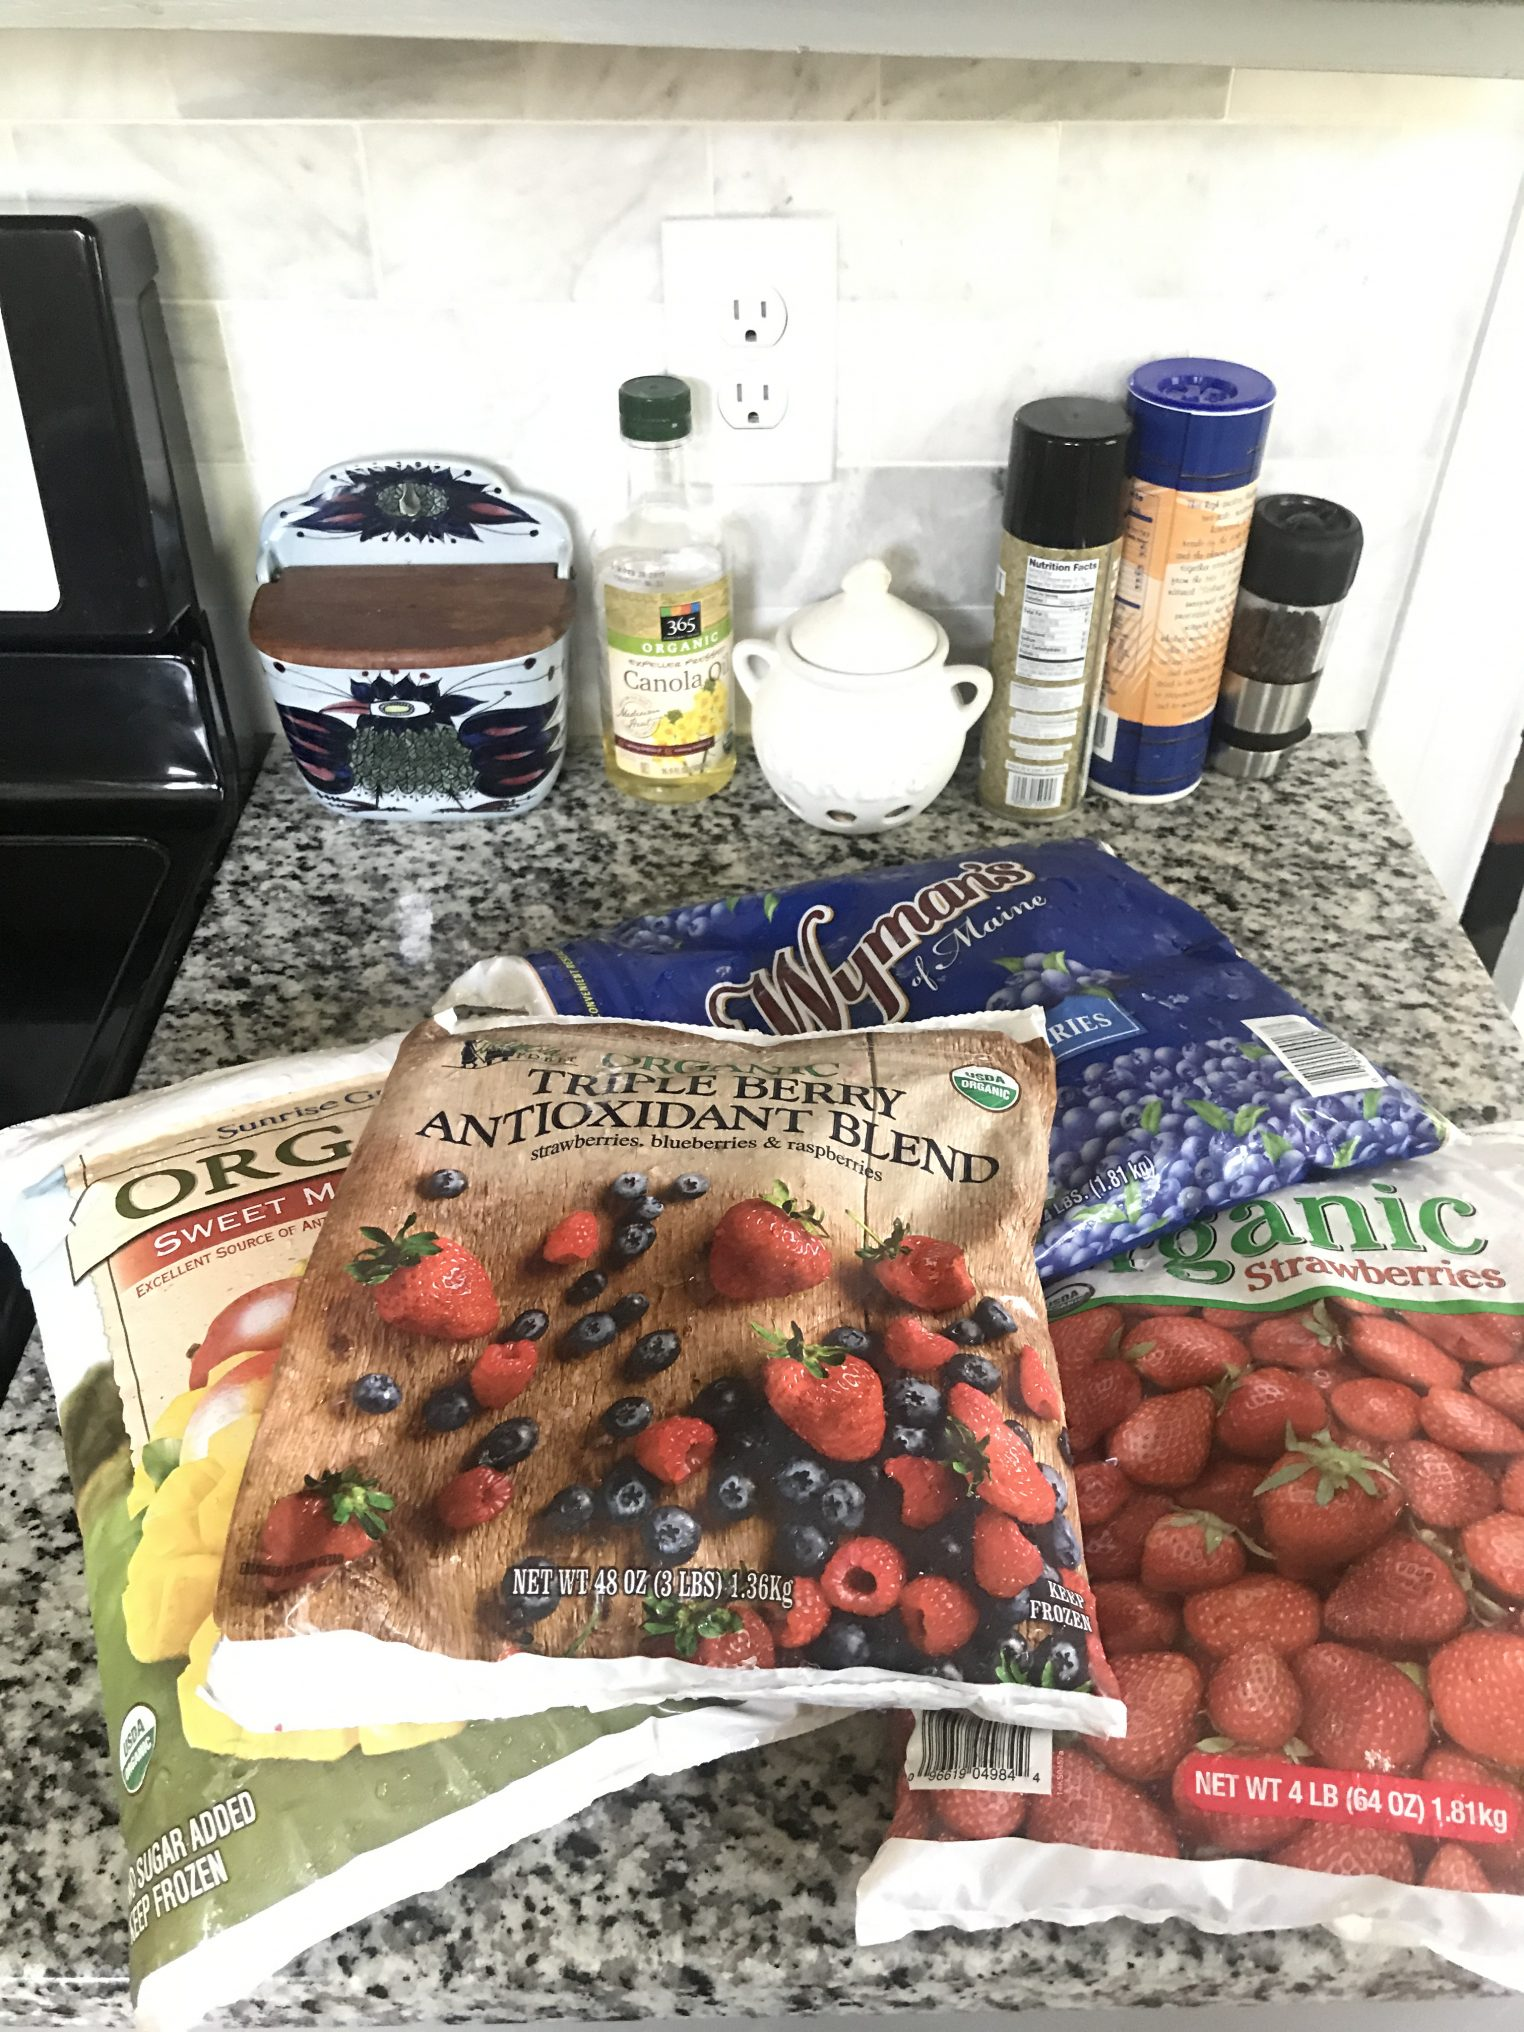 What to buy at Costco, healthy finds from a Registered Dietitian Nutritionist. www.delishknowledge.com